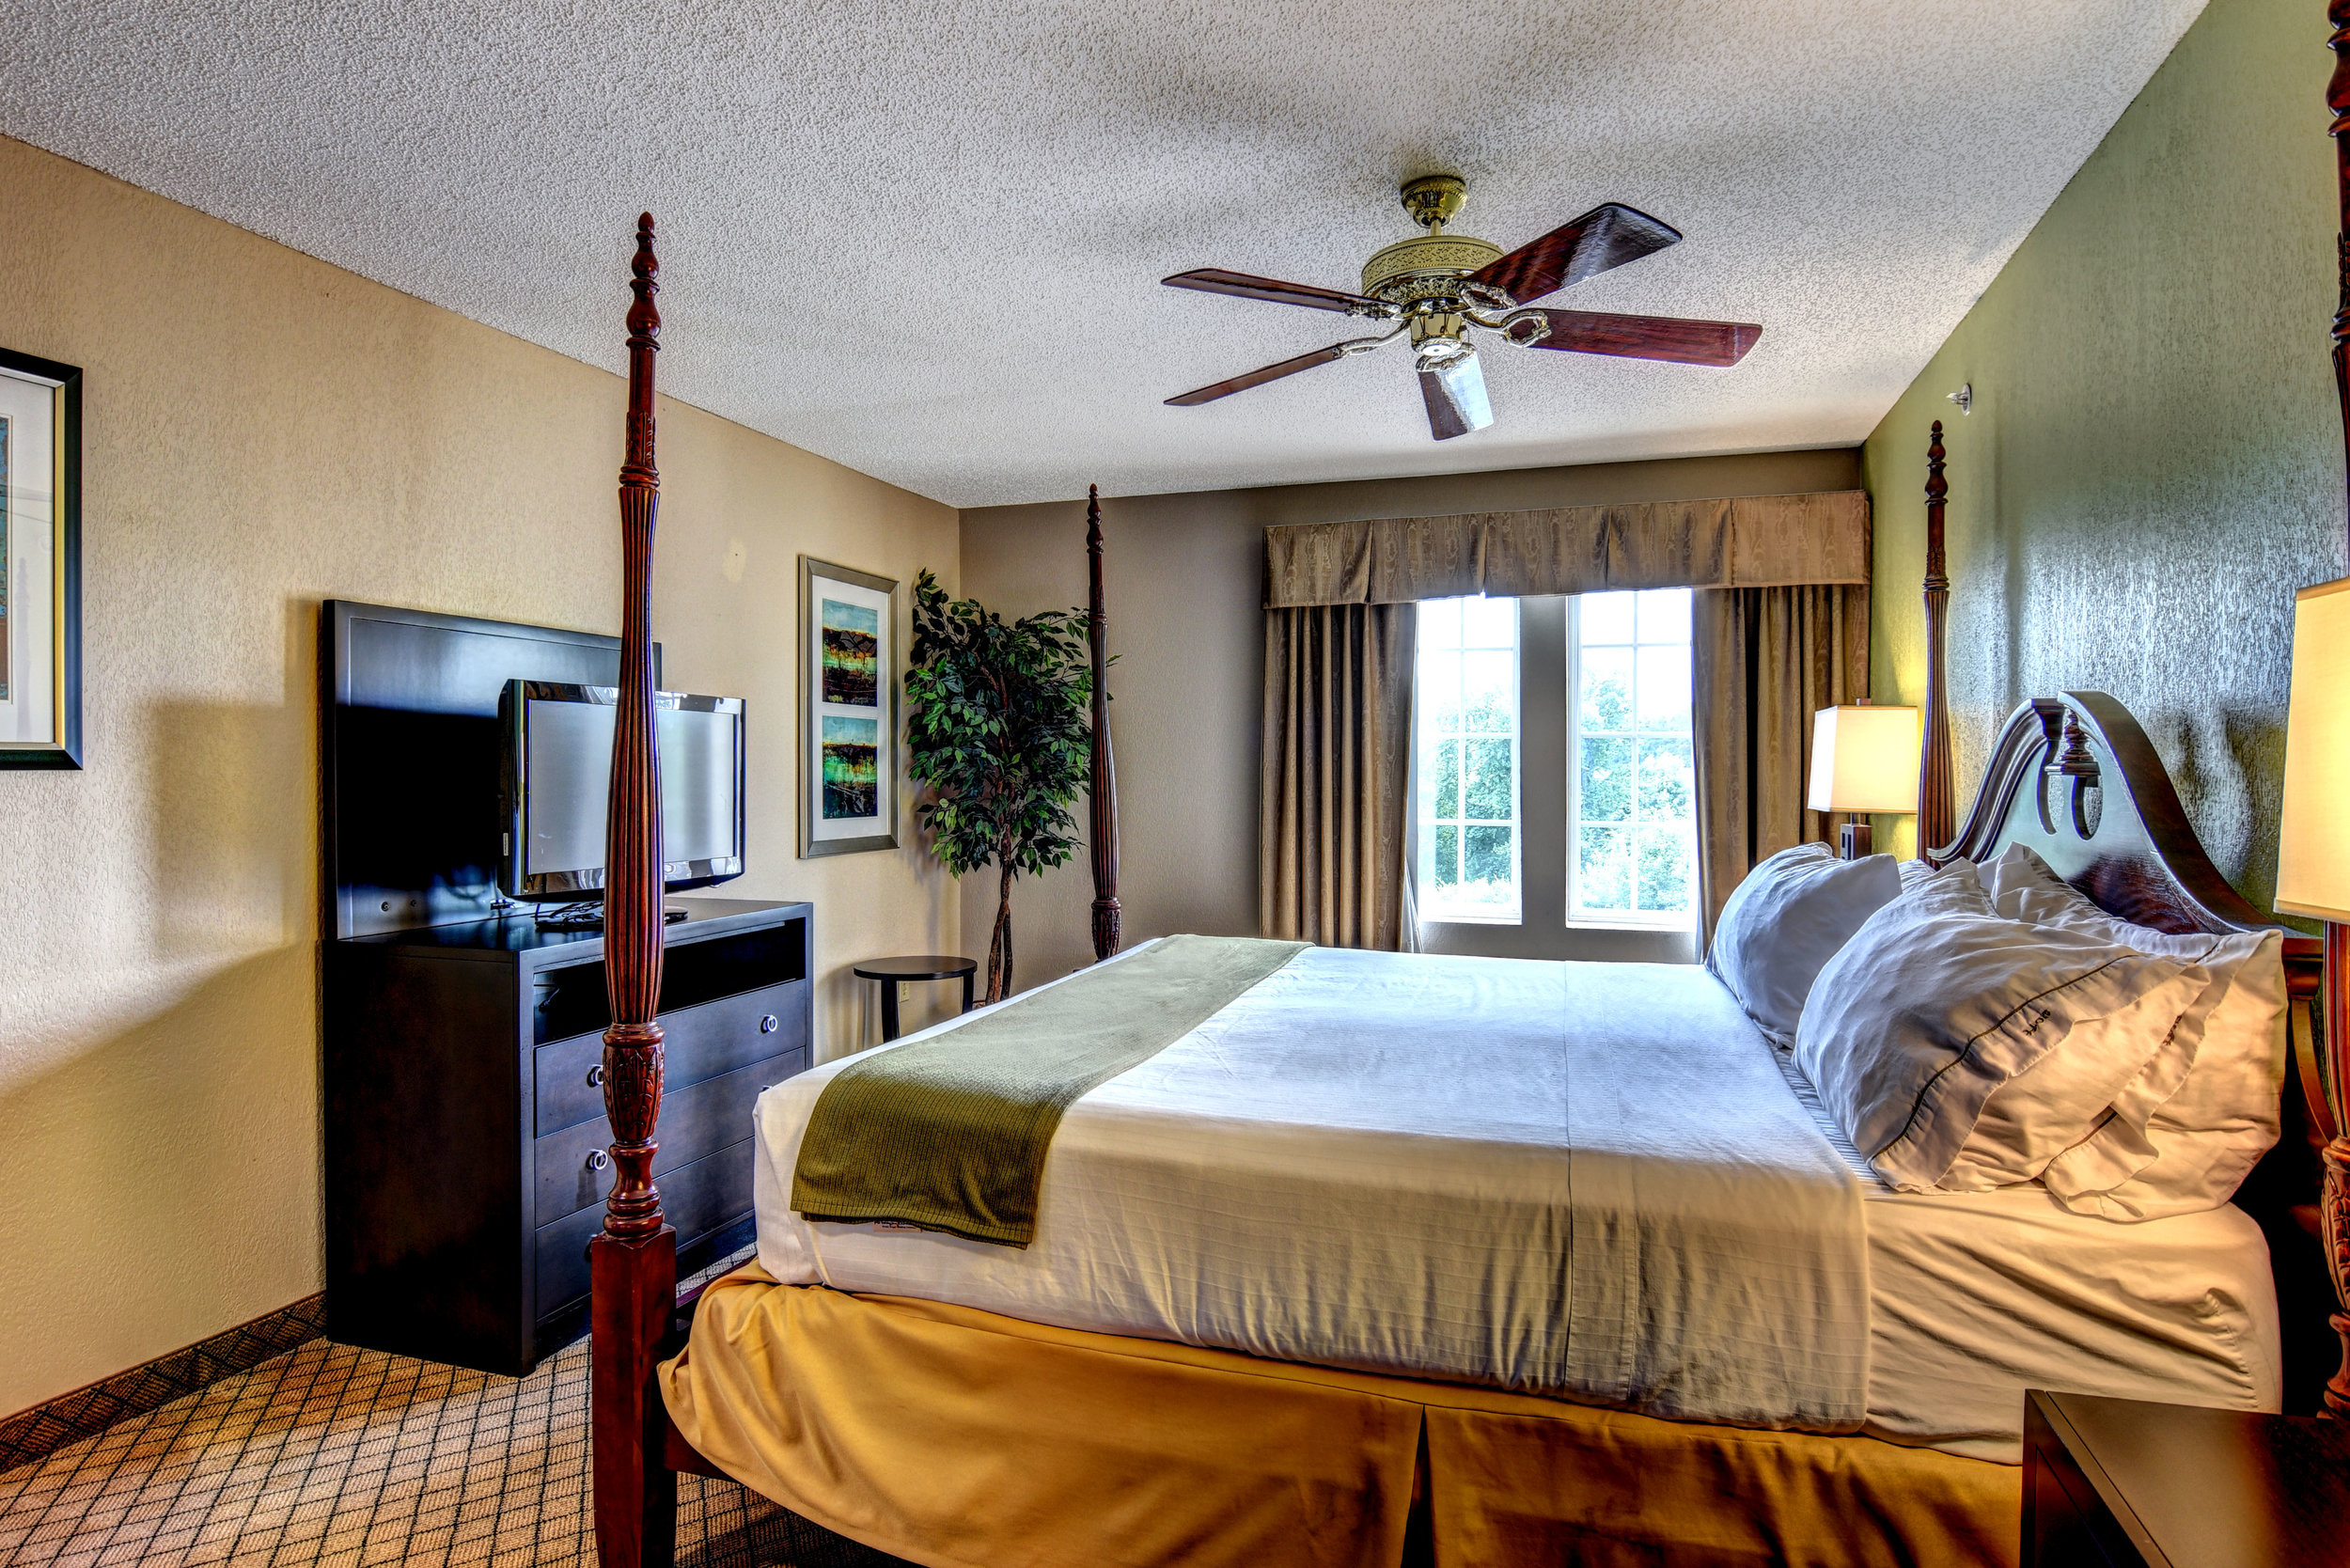 river-landing-wallace-accommodations-holiday-inn-express.jpg